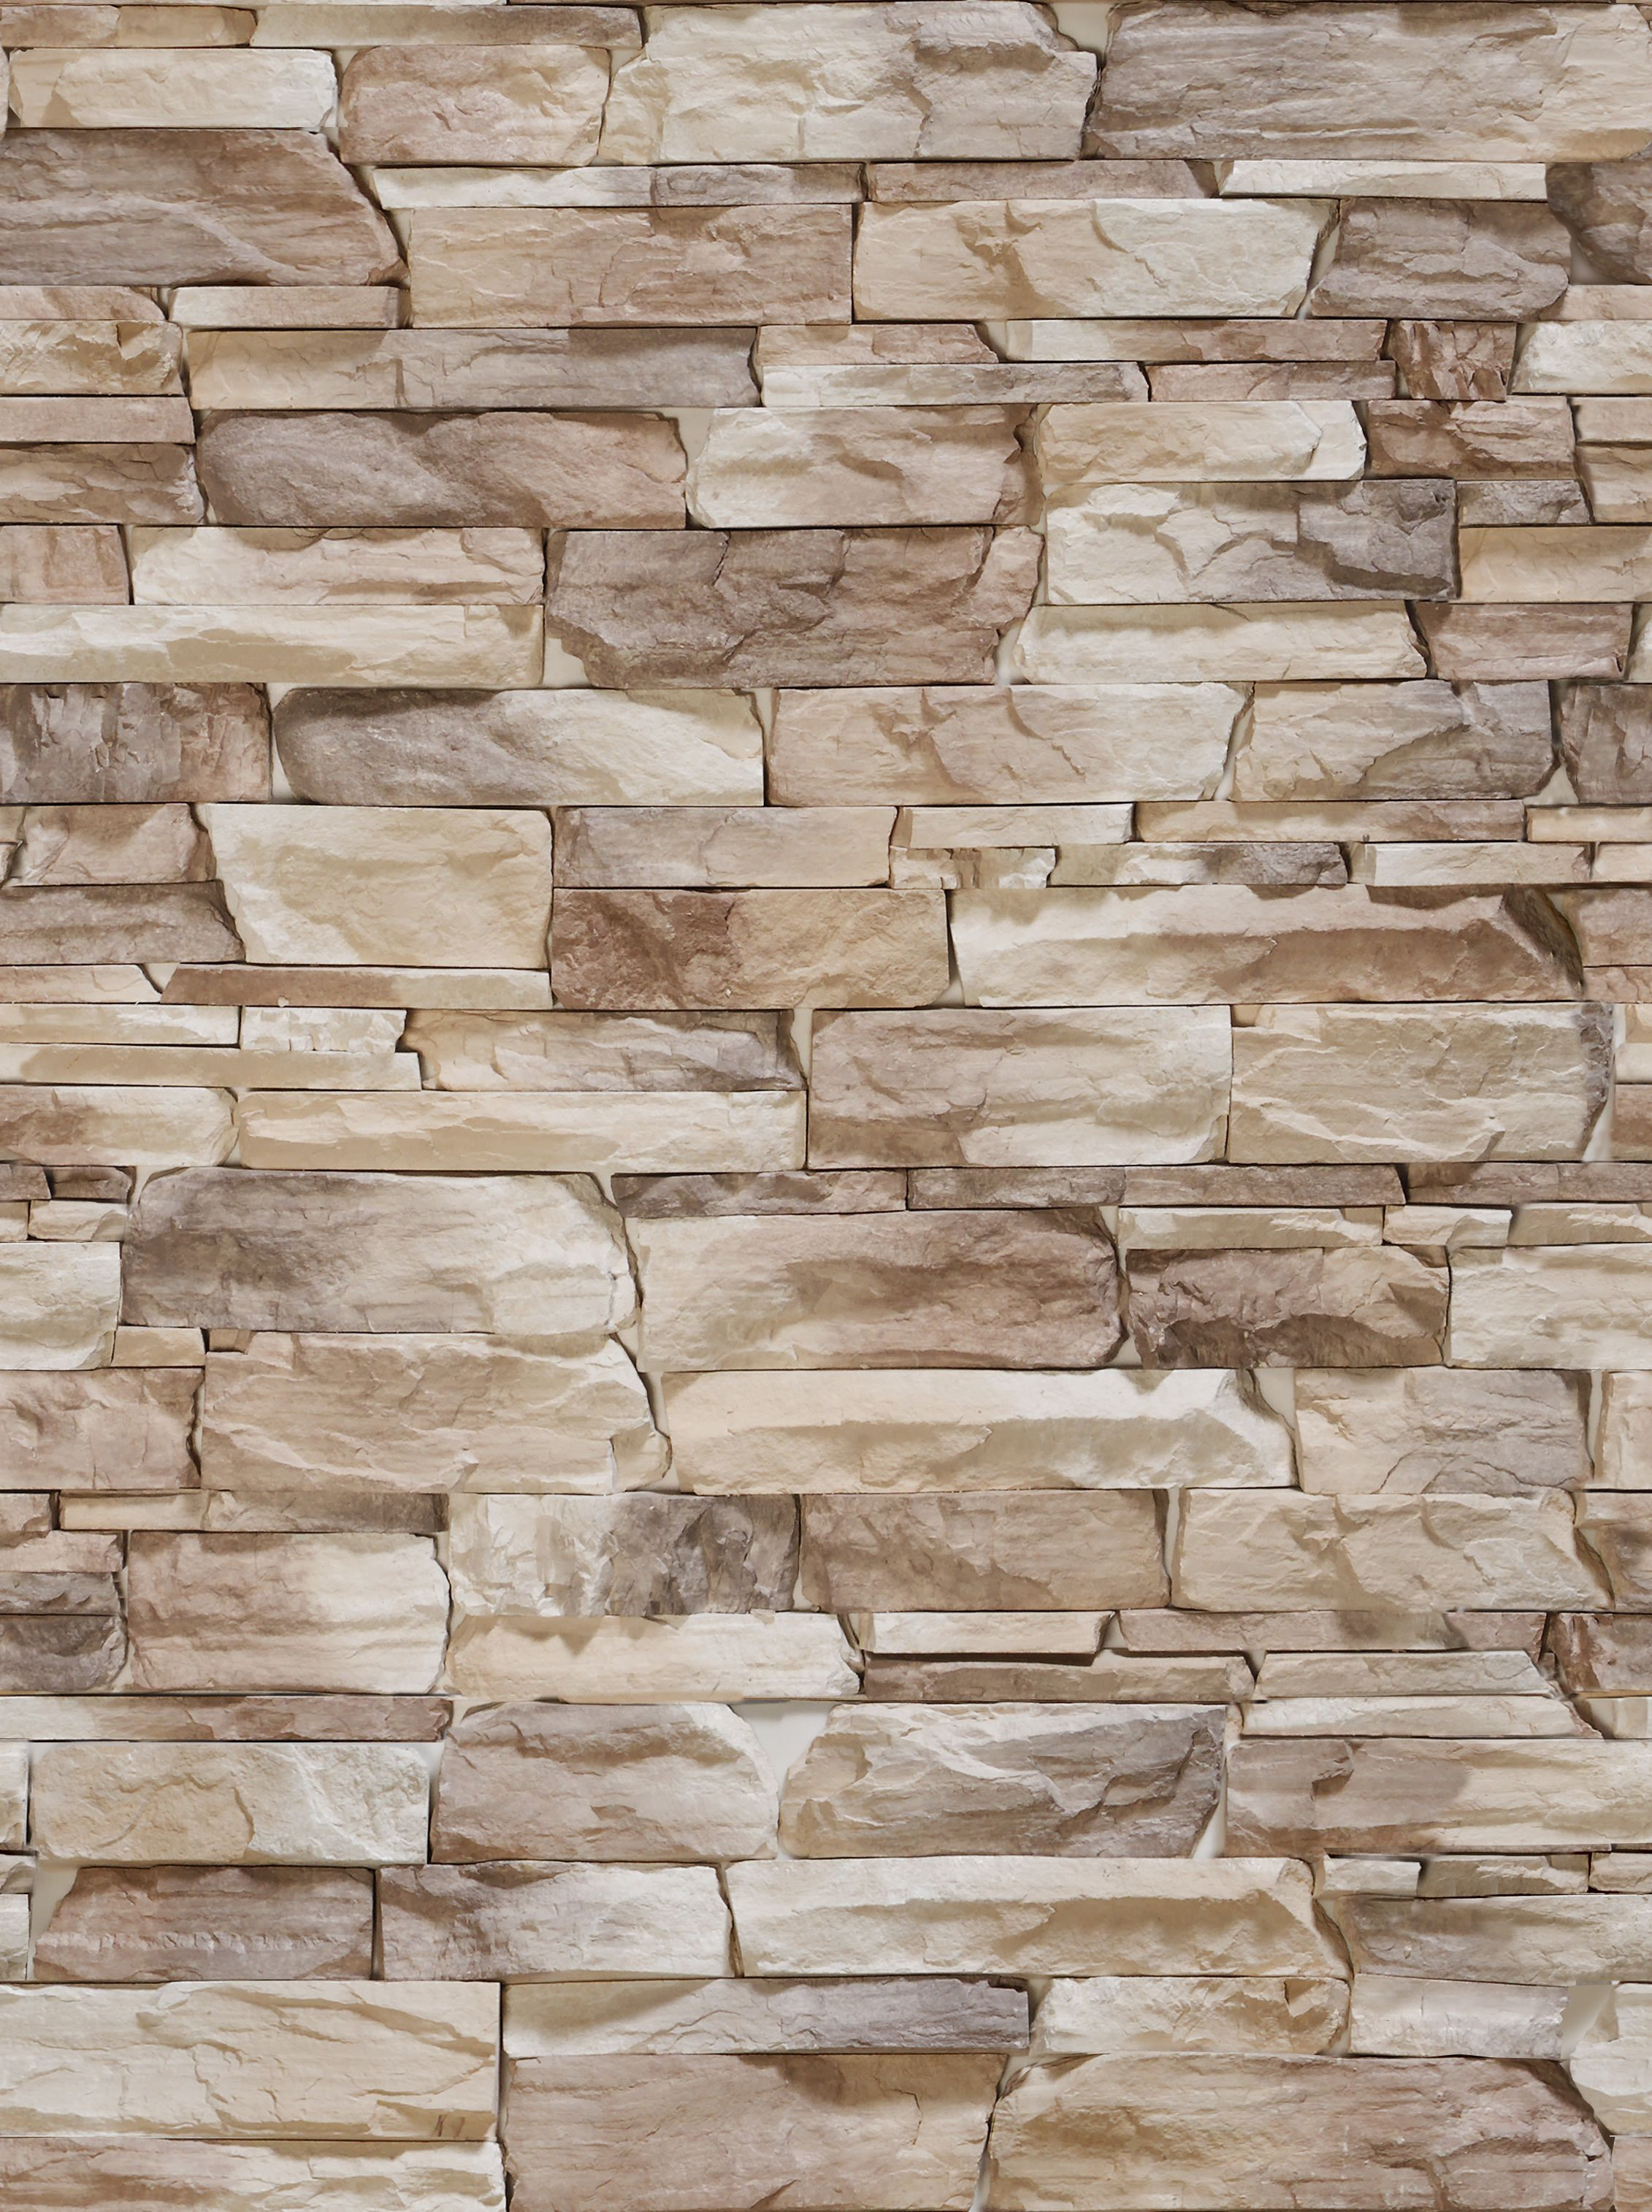 Wild stone wall texture stone stone wall download - Exterior wall stone cladding texture ...